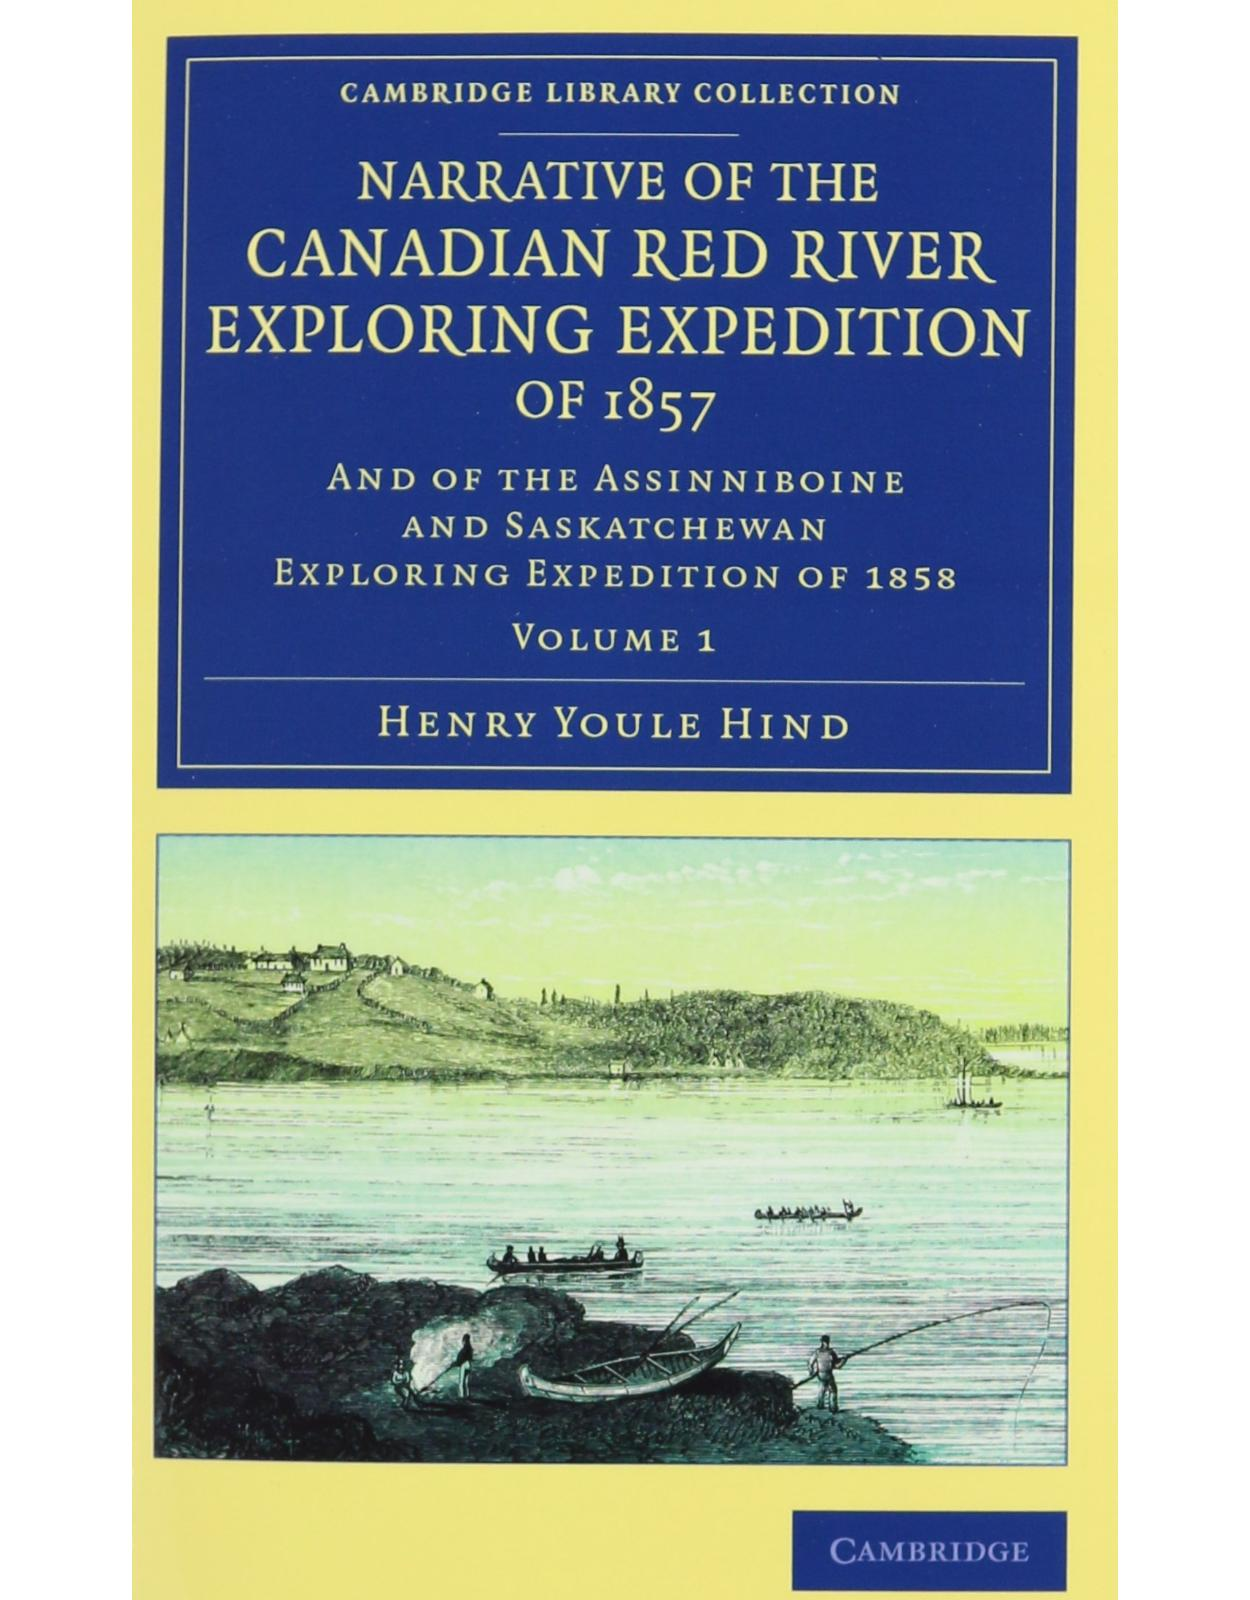 Narrative of the Canadian Red River Exploring Expedition of 1857 2 Volume Set: And of the Assinniboine and Saskatchewan Exploring Expedition of 1858 ... Library Collection - North American History)